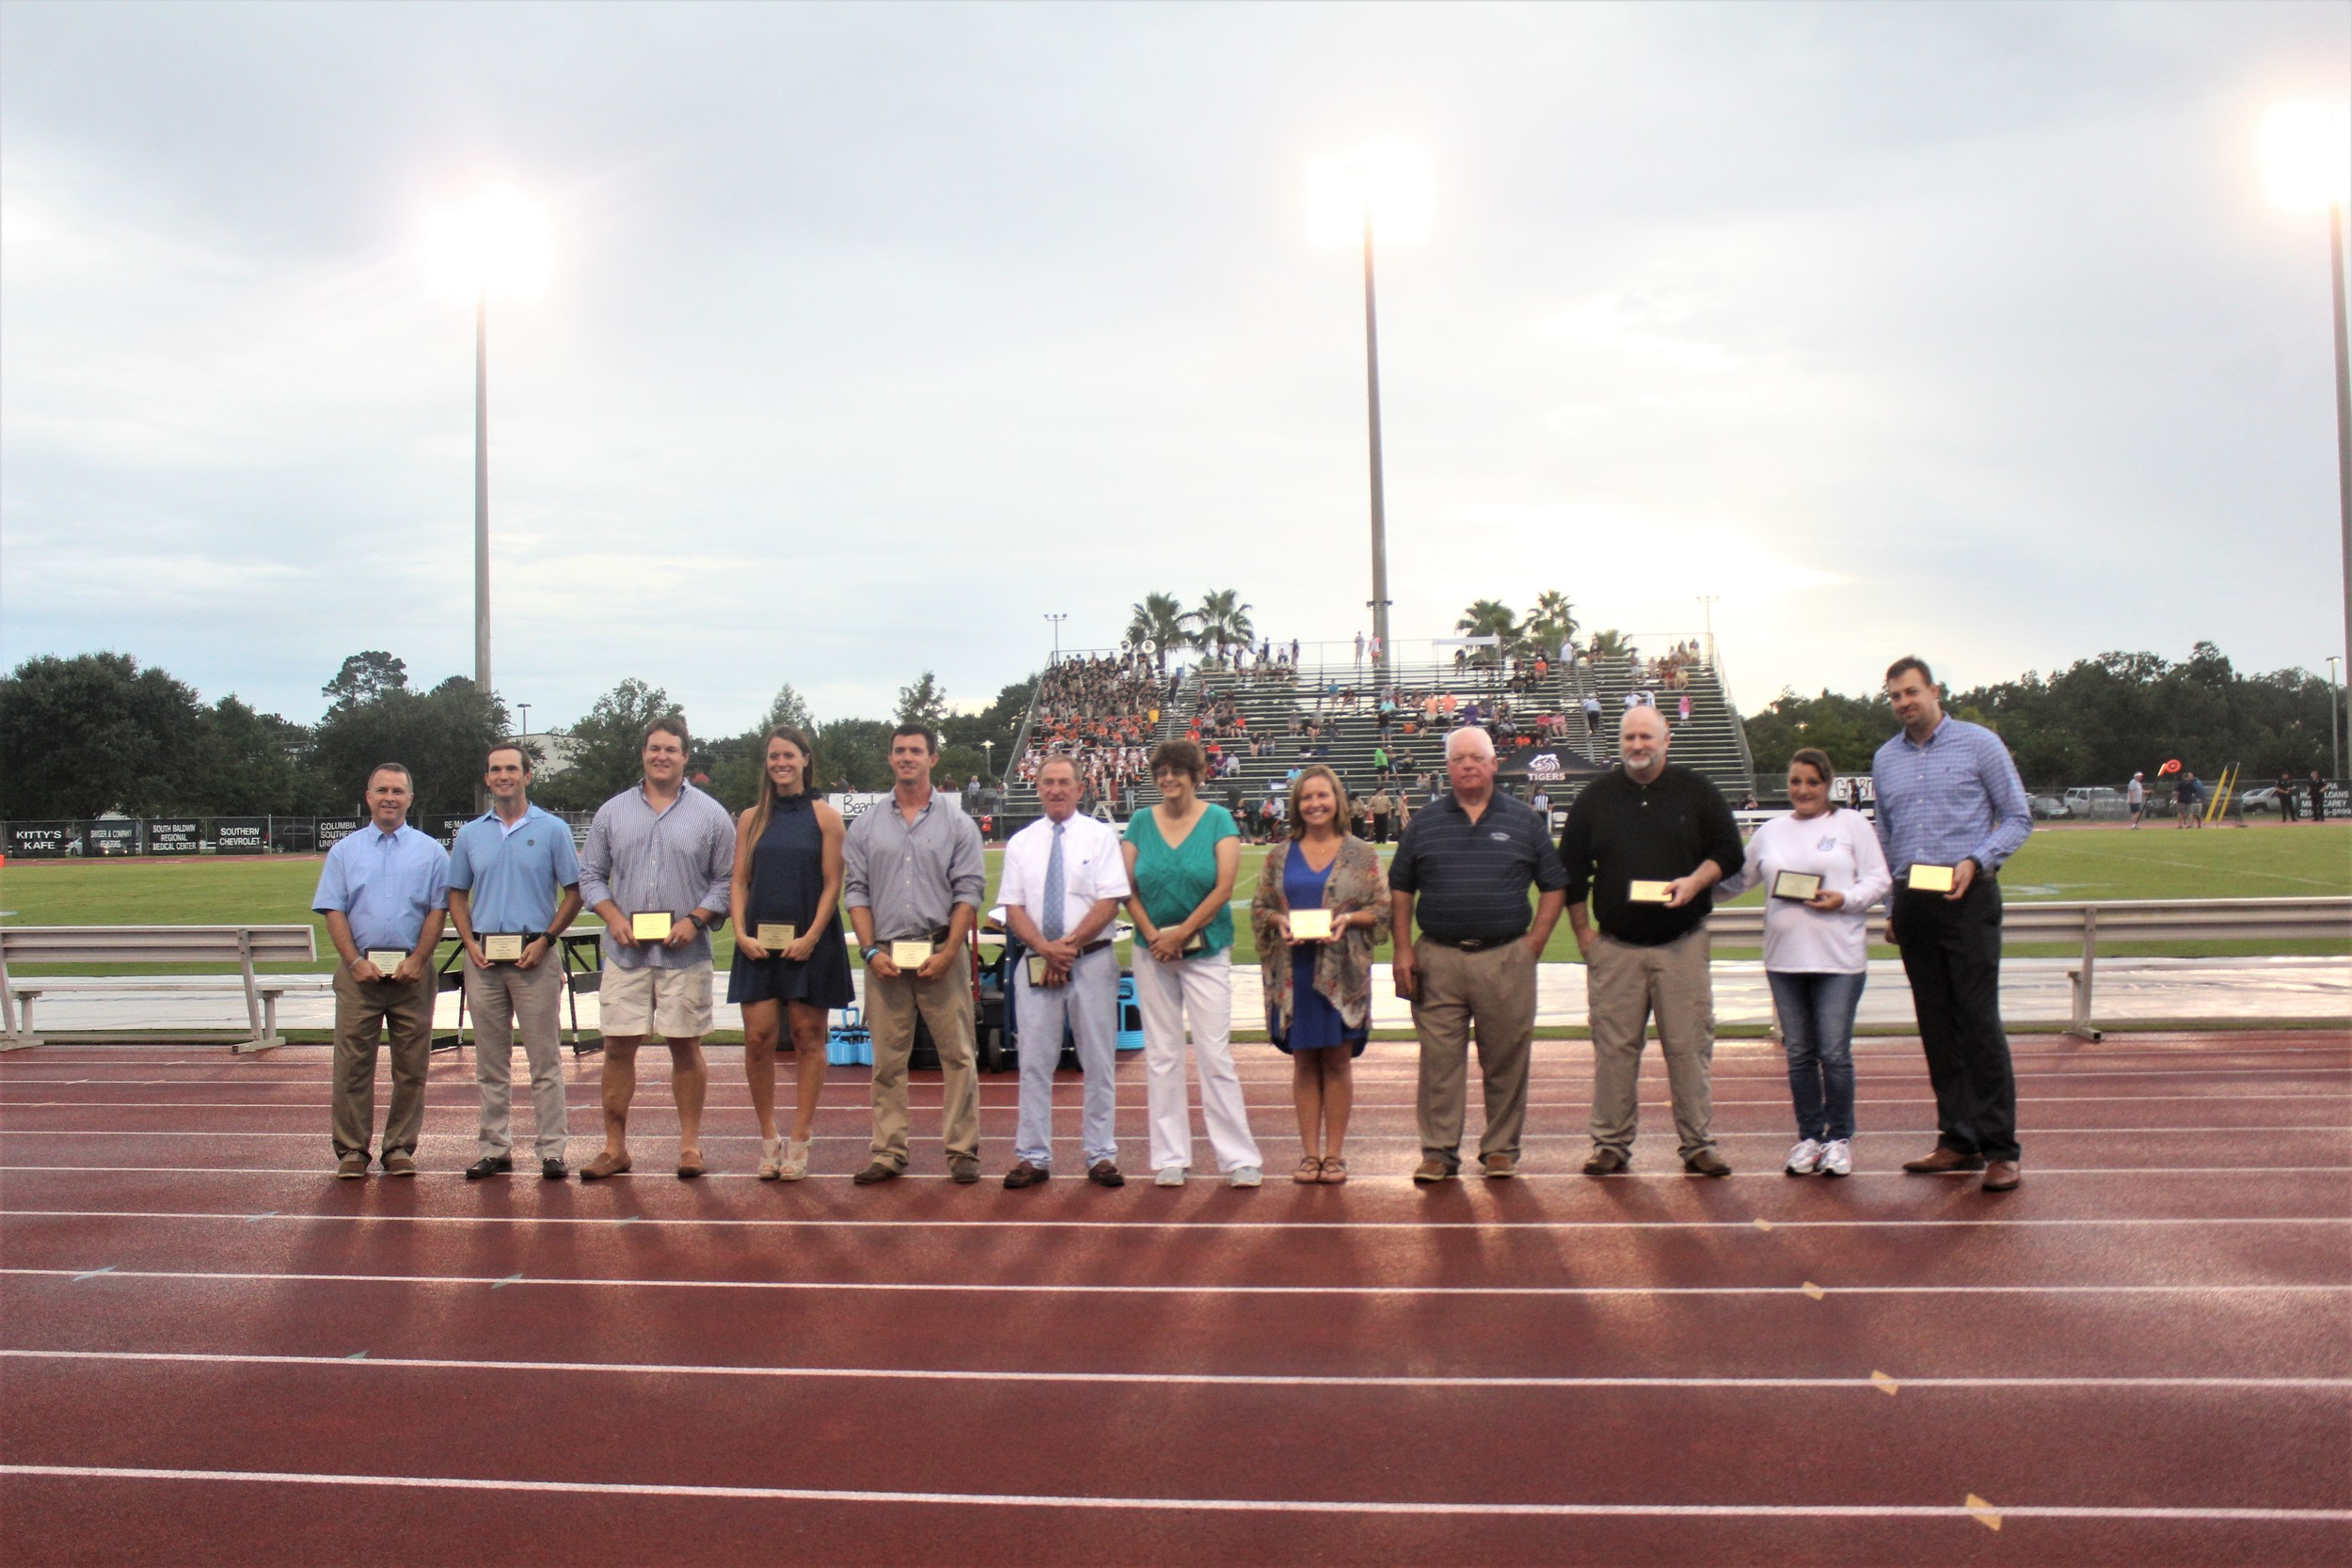 Member of the Class of 2018 include Wing Brett, Brandon Ellis, Logan Hickman, Haley Hopkins, DJ Jones, Danny Martin, Re Re Machen, Brandy Rhodes Reeves, Harold Samples, Donnie Spohn, Gary Johnston and Pat Wilkinson.